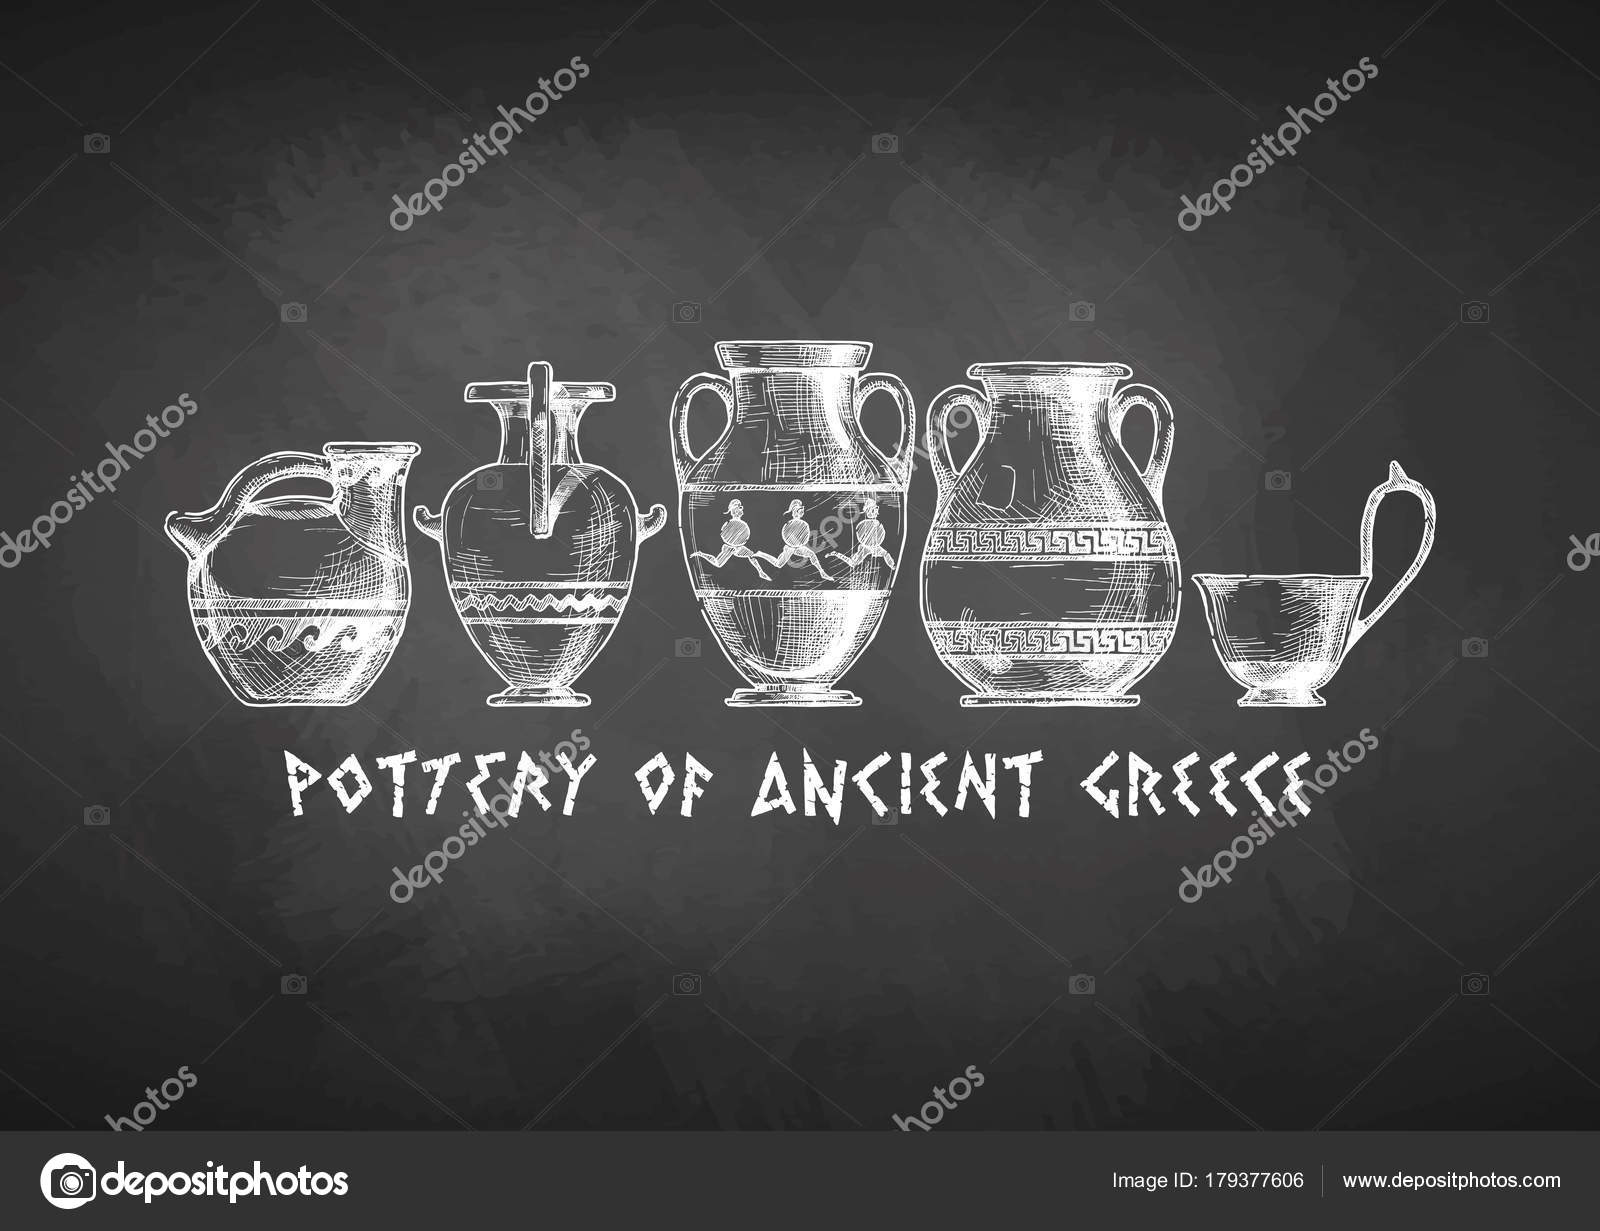 Typology of greek vase shapes stock vector suricoma 179377606 pottery of ancient greece vases set drawn with chalk on blackboard types of vases askos pottery vessel hydria amphora pelike kyathos reviewsmspy